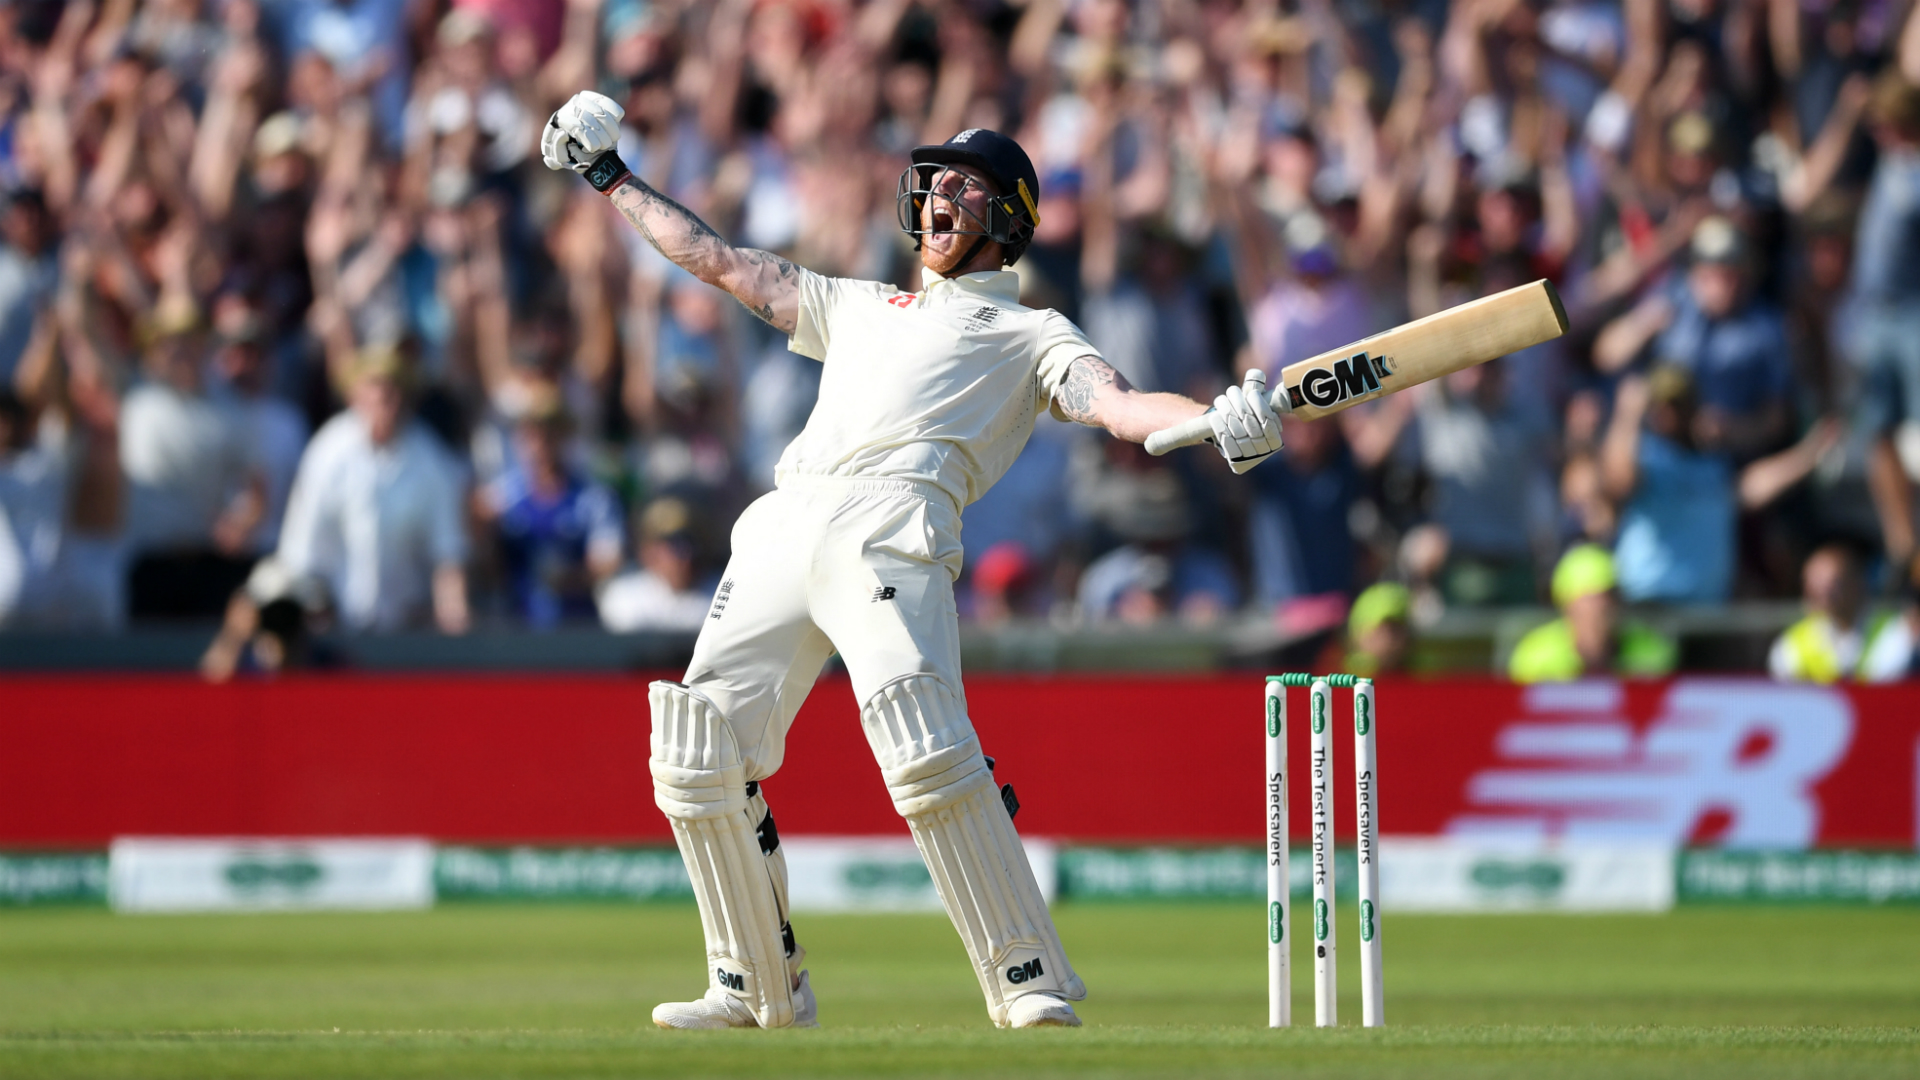 Stokes reflects on 'one of the great days' as he watches Headingley heroics again